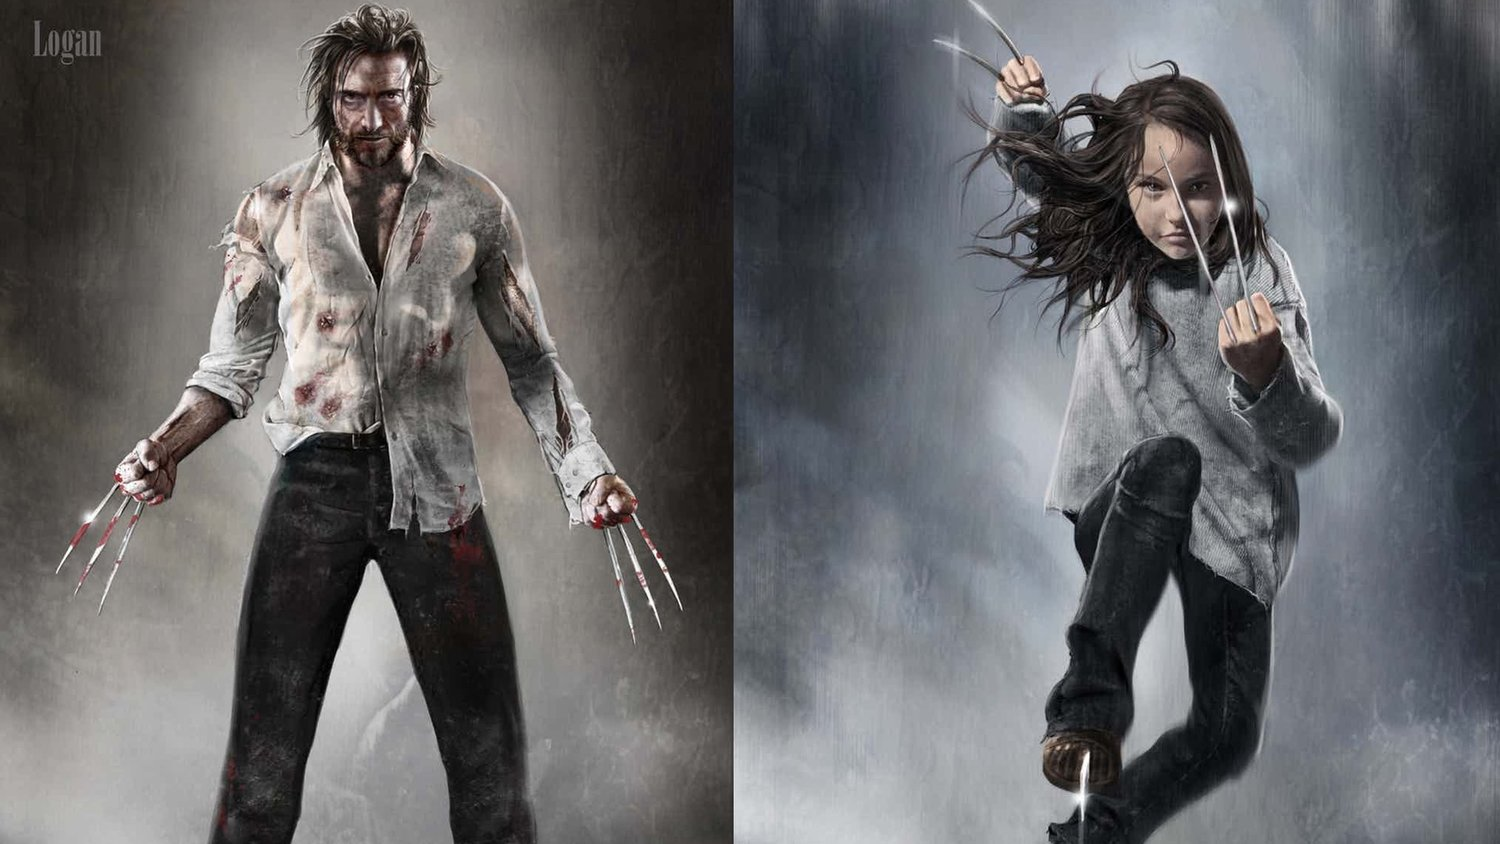 LOGAN Concept Art Shows Early Designs for Wolverine, X-23, Professor X, and Caliban